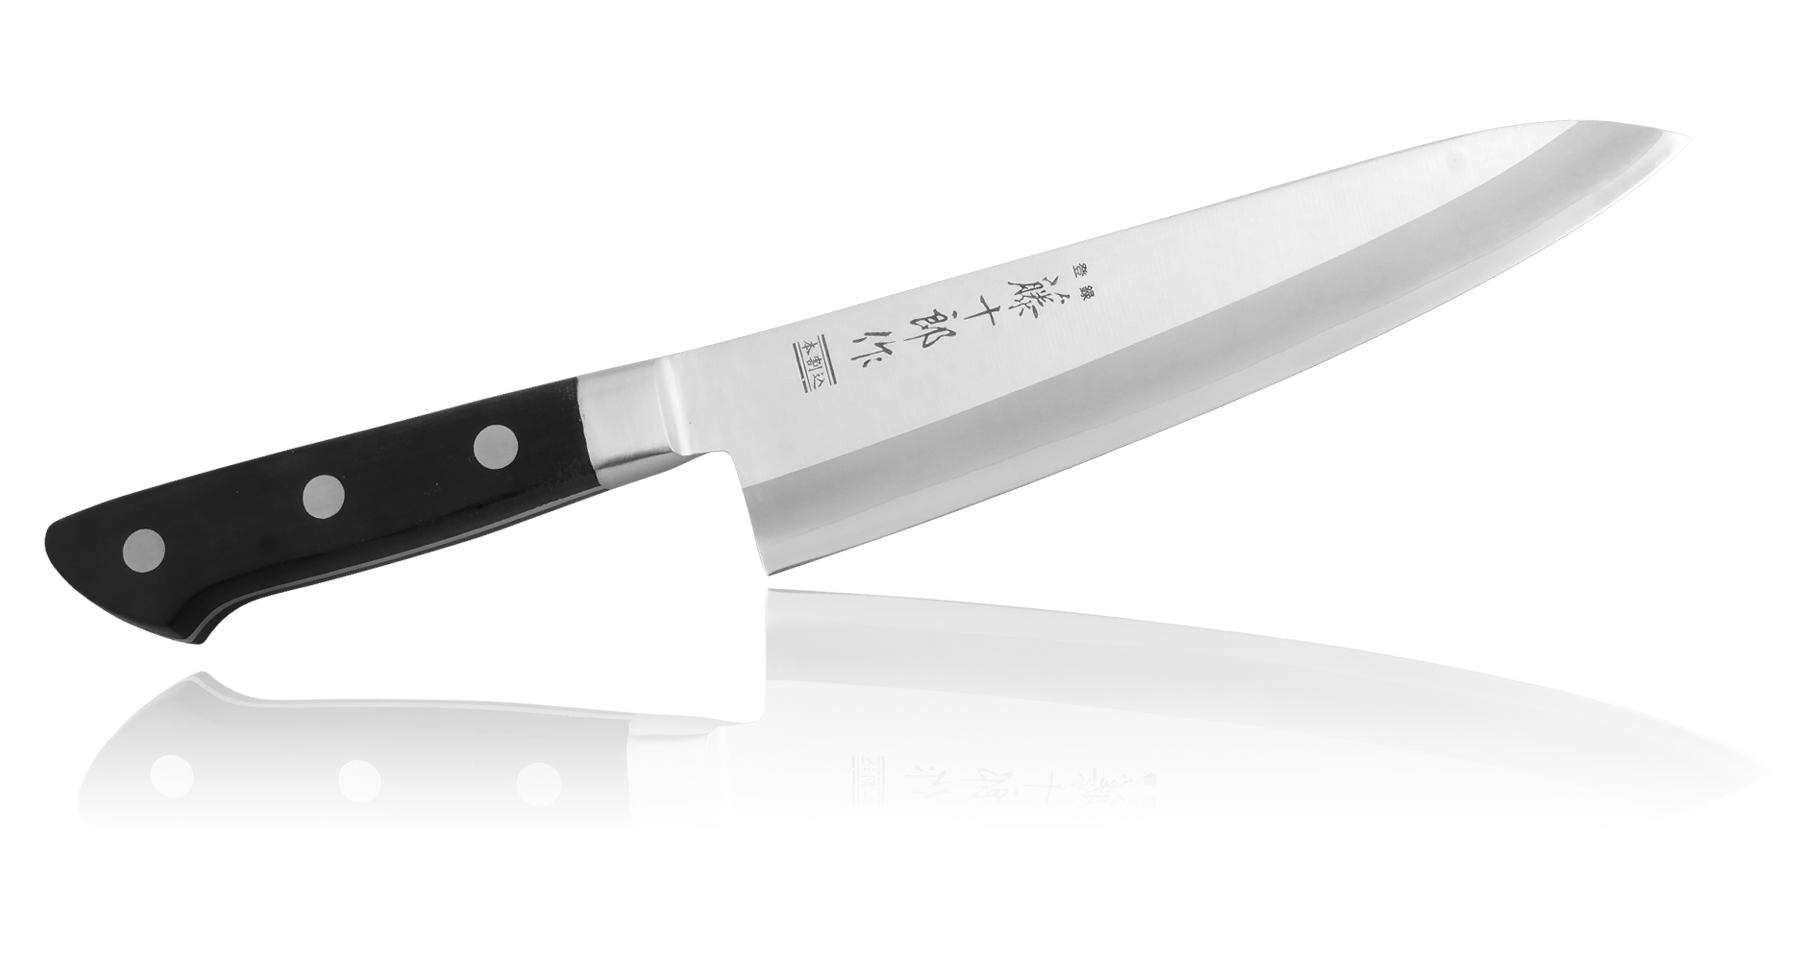 Нож Шефа Tojyuro Tojiro, 180 мм, сталь AUS-8 складной нож james william design shizuka noh ken™ black aus 8 blade 420j2 stainless steel